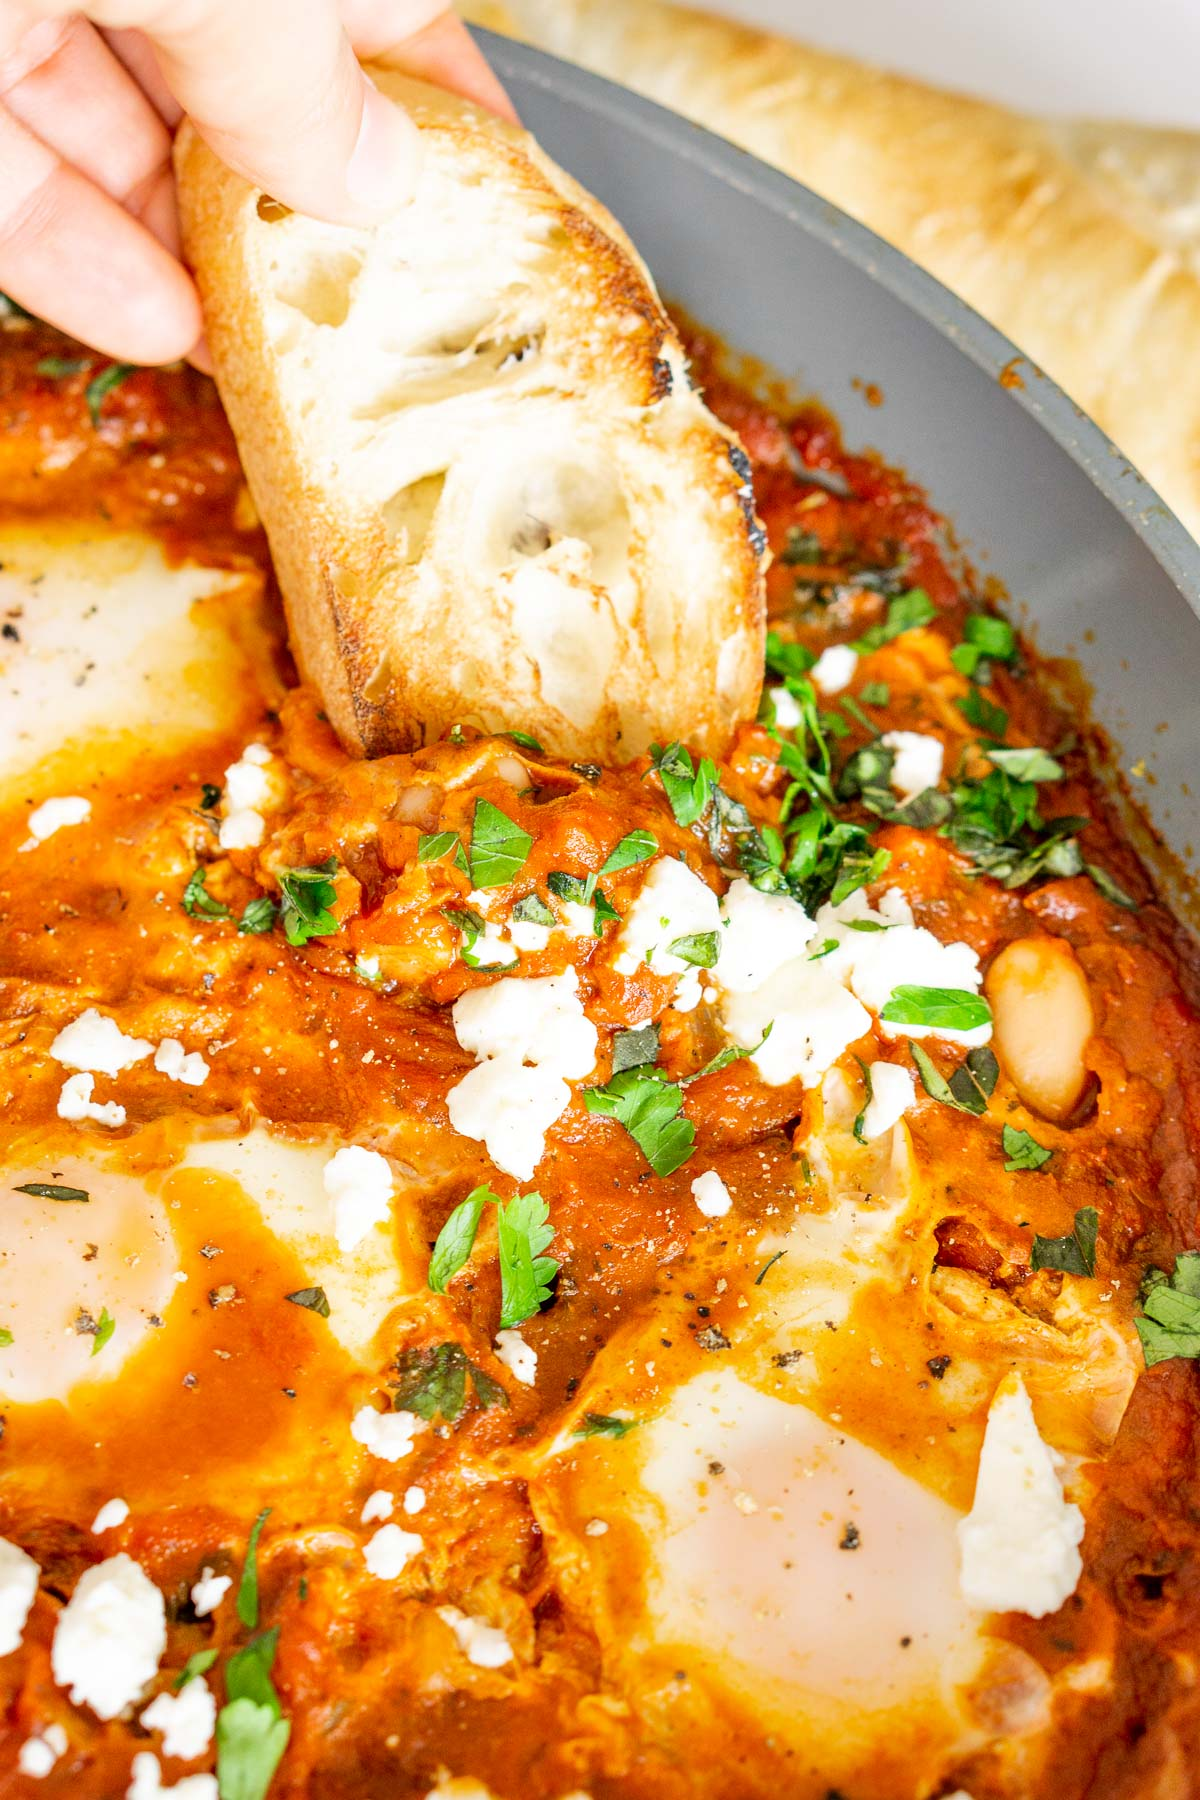 Dipping a toasted baguette into a white bean shakshuka with feta cheese.